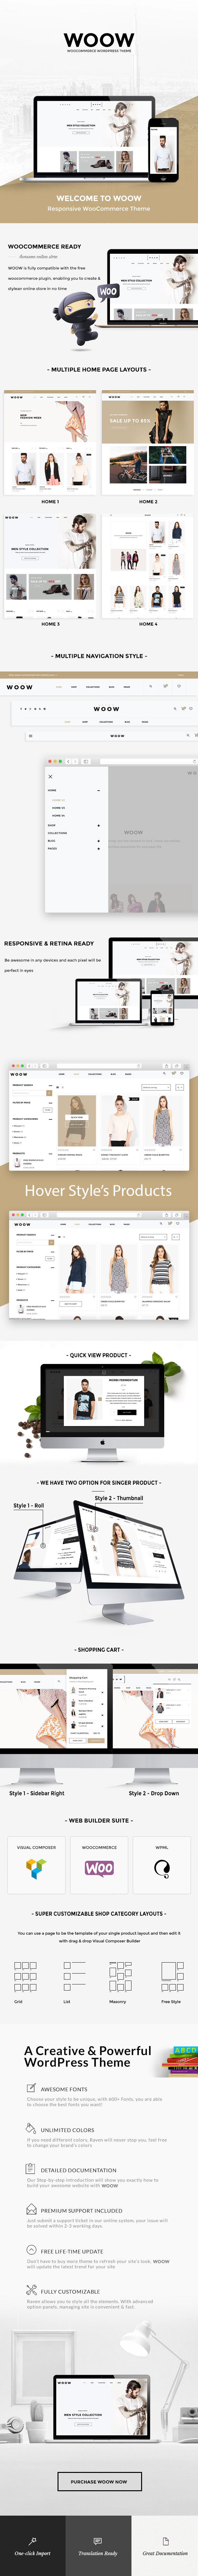 WOOW - Fashion WooCommerce WordPress theme